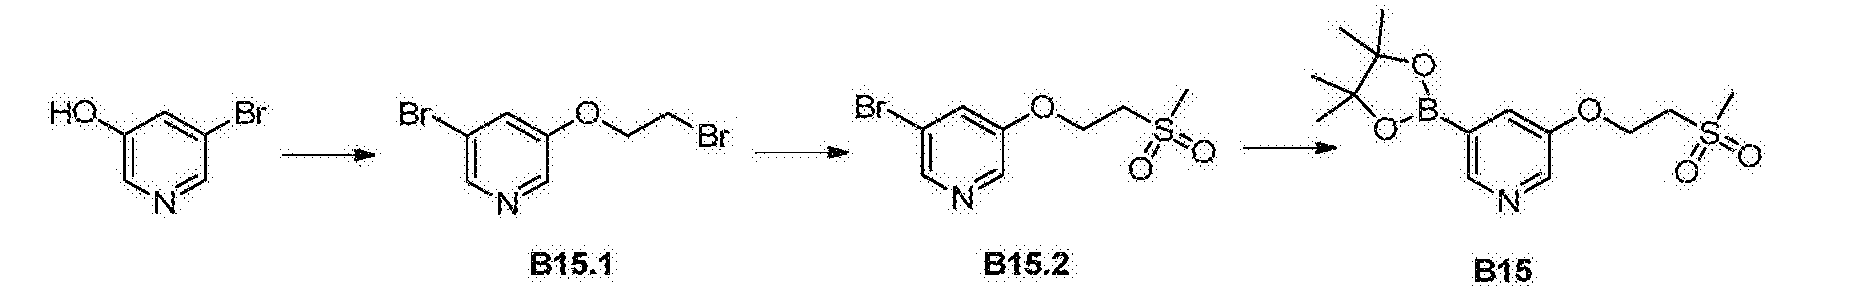 CN107108637A - Triazolopyrimidine compounds and uses thereof